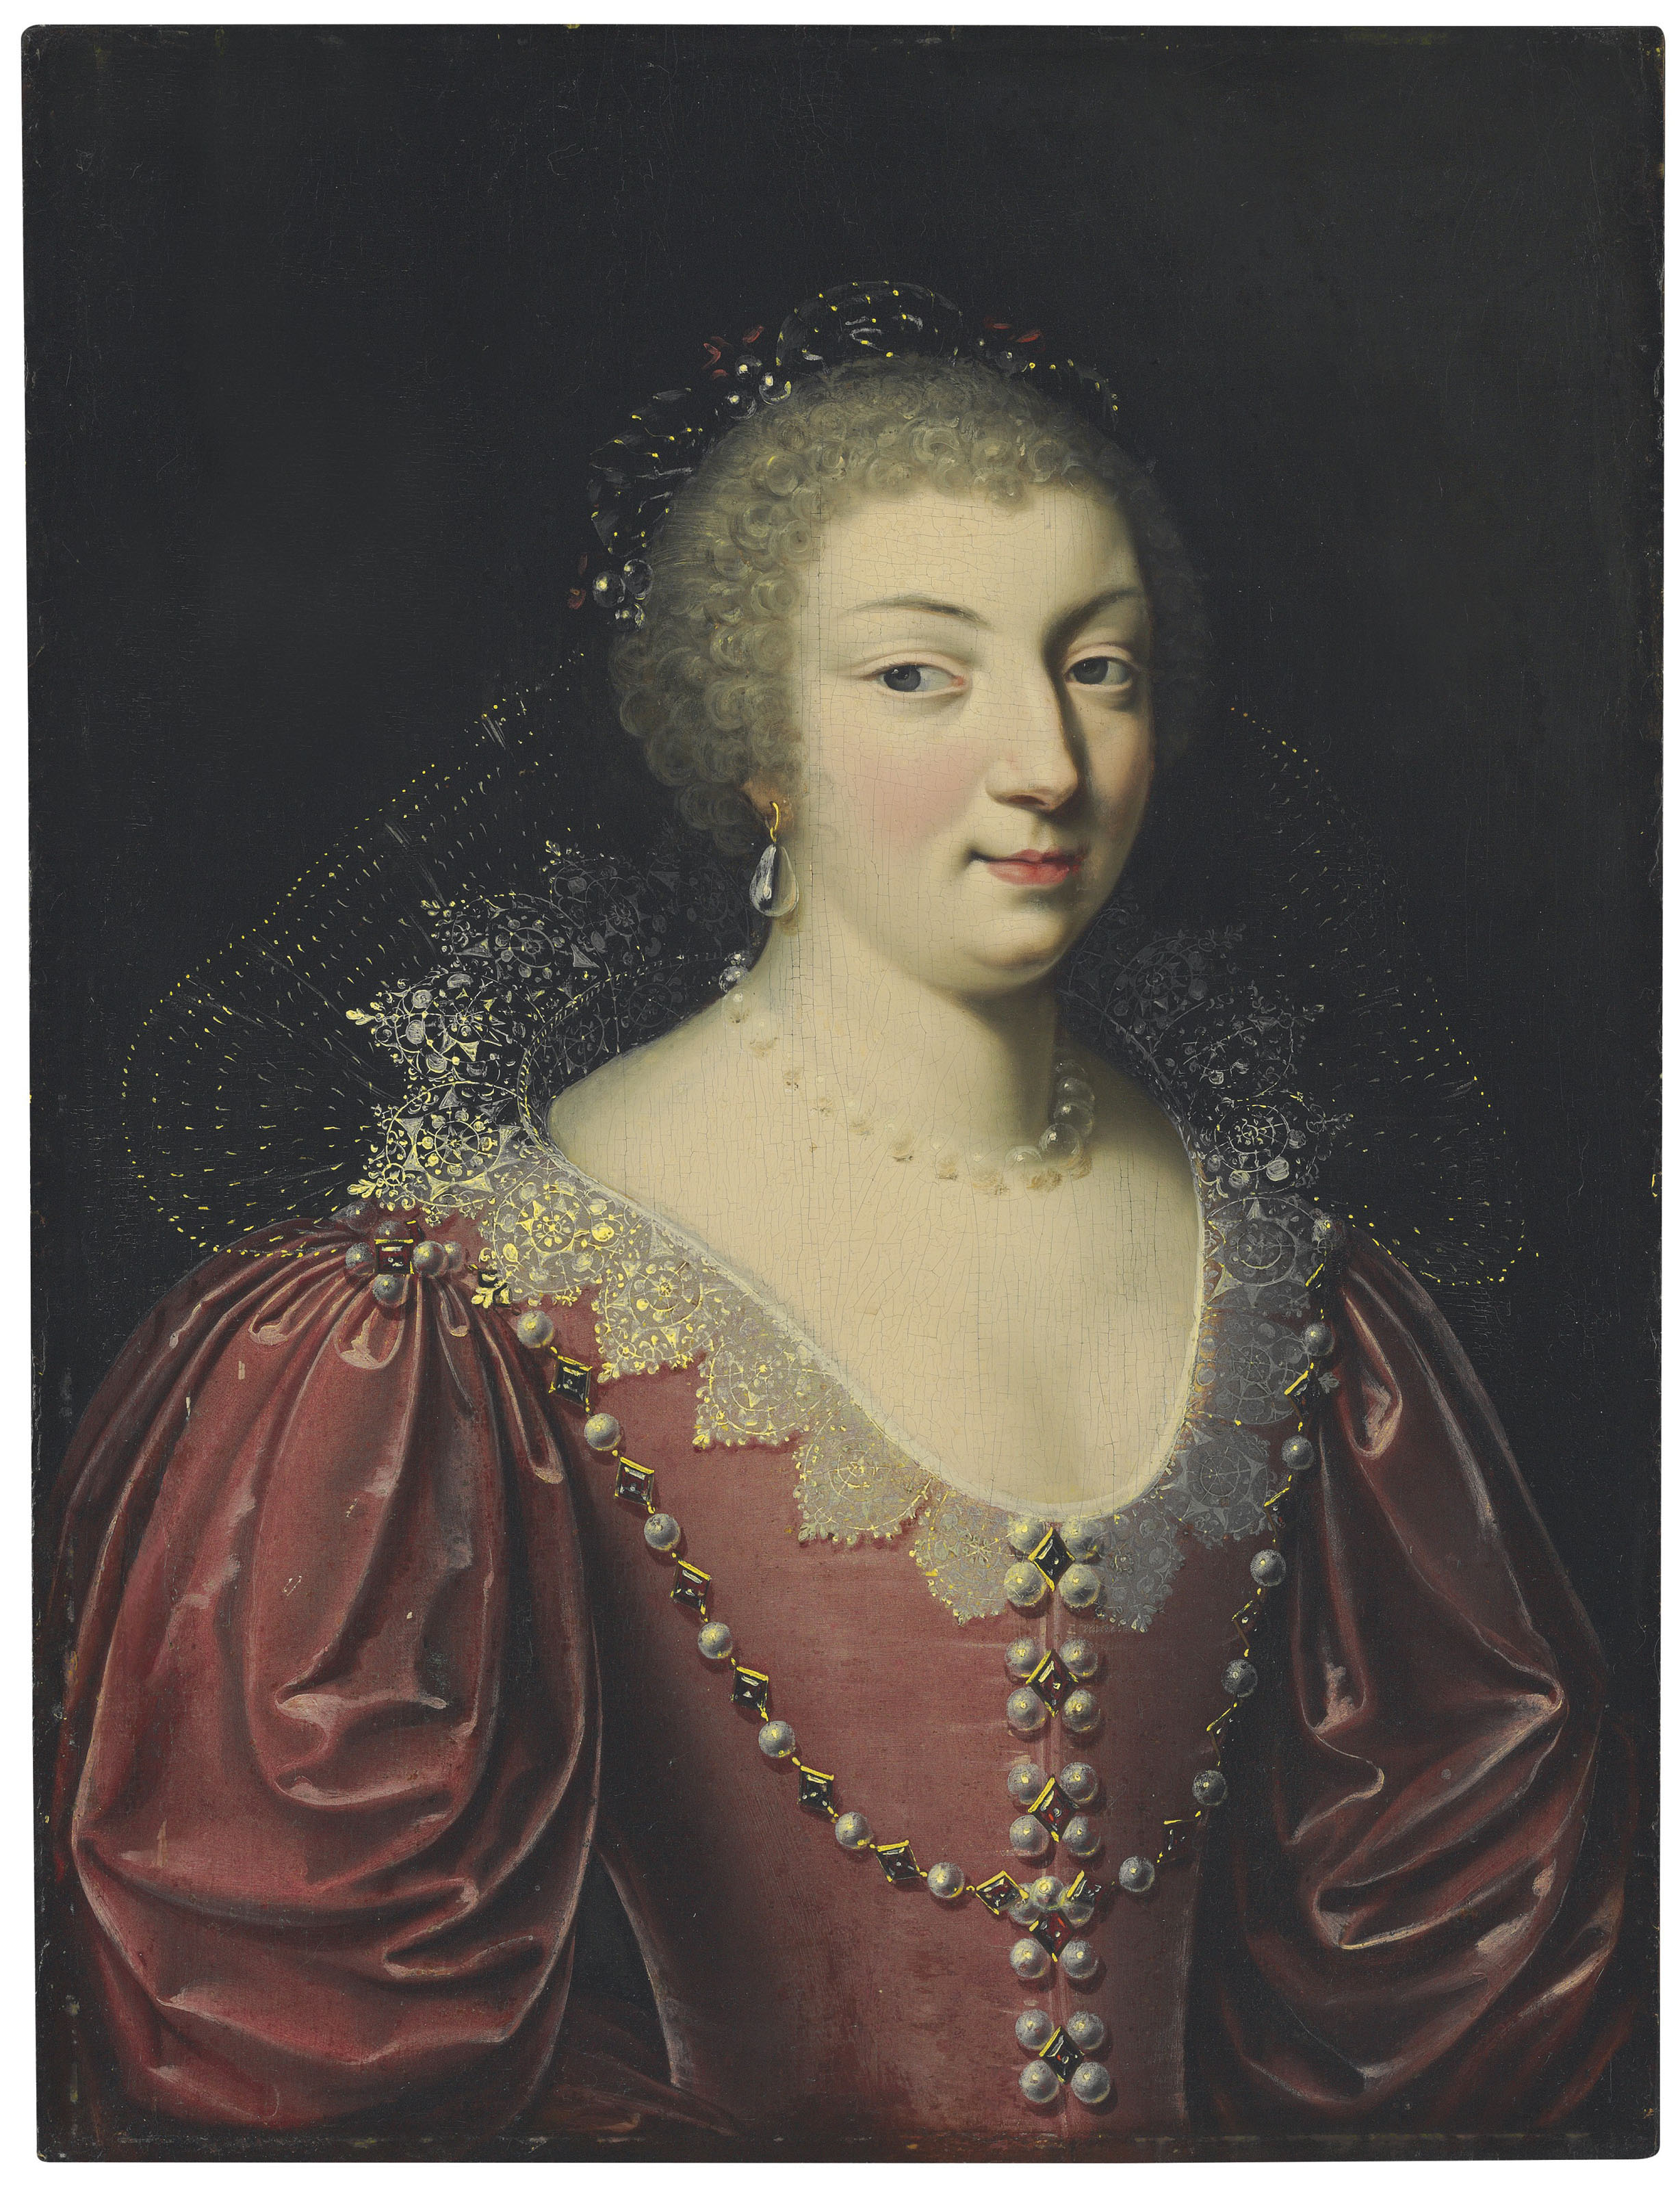 Portrait of a lady, traditionally identified as Marie de' Medici (1575-1642), Queen of France, half-length